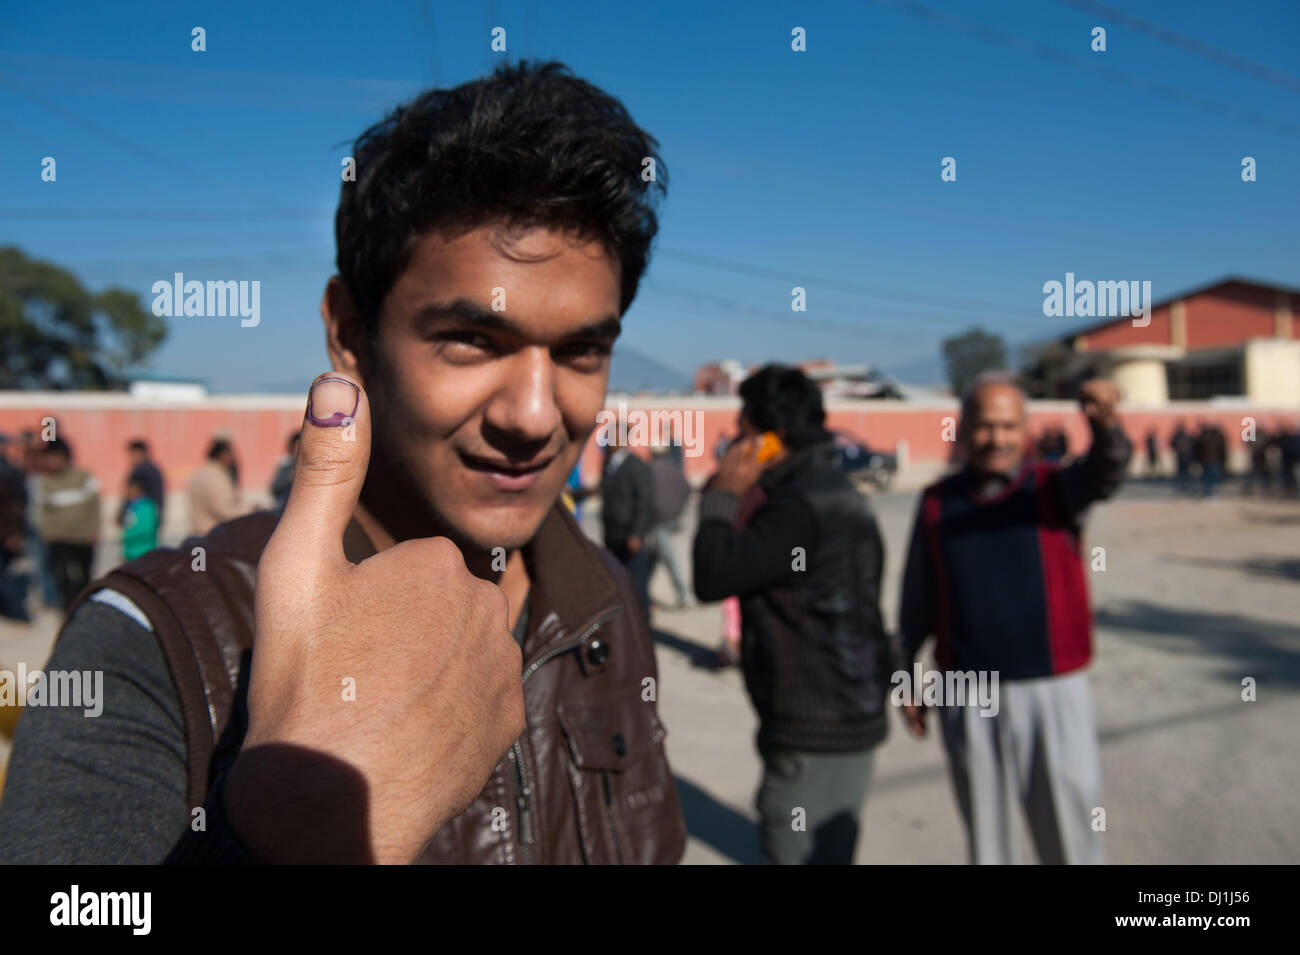 Kathmandu, Nepal. 19th Nov, 2013. Bizin Upadaya, an 18 year old shows marked finger after the voting. He voted for the first time.Over 12 million eligible voters flocked to polling stations in a bid to elect Constituent Assembly. Last elections were held in 2008 when the Constituent Assembly failed to write a new constitution. Nepal has been struggling with political uncertainty since 2006 when street demonstrations forced then King Gyanendra to give up his authoritarian rule. Credit:  ZUMA Press, Inc./Alamy Live News - Stock Image